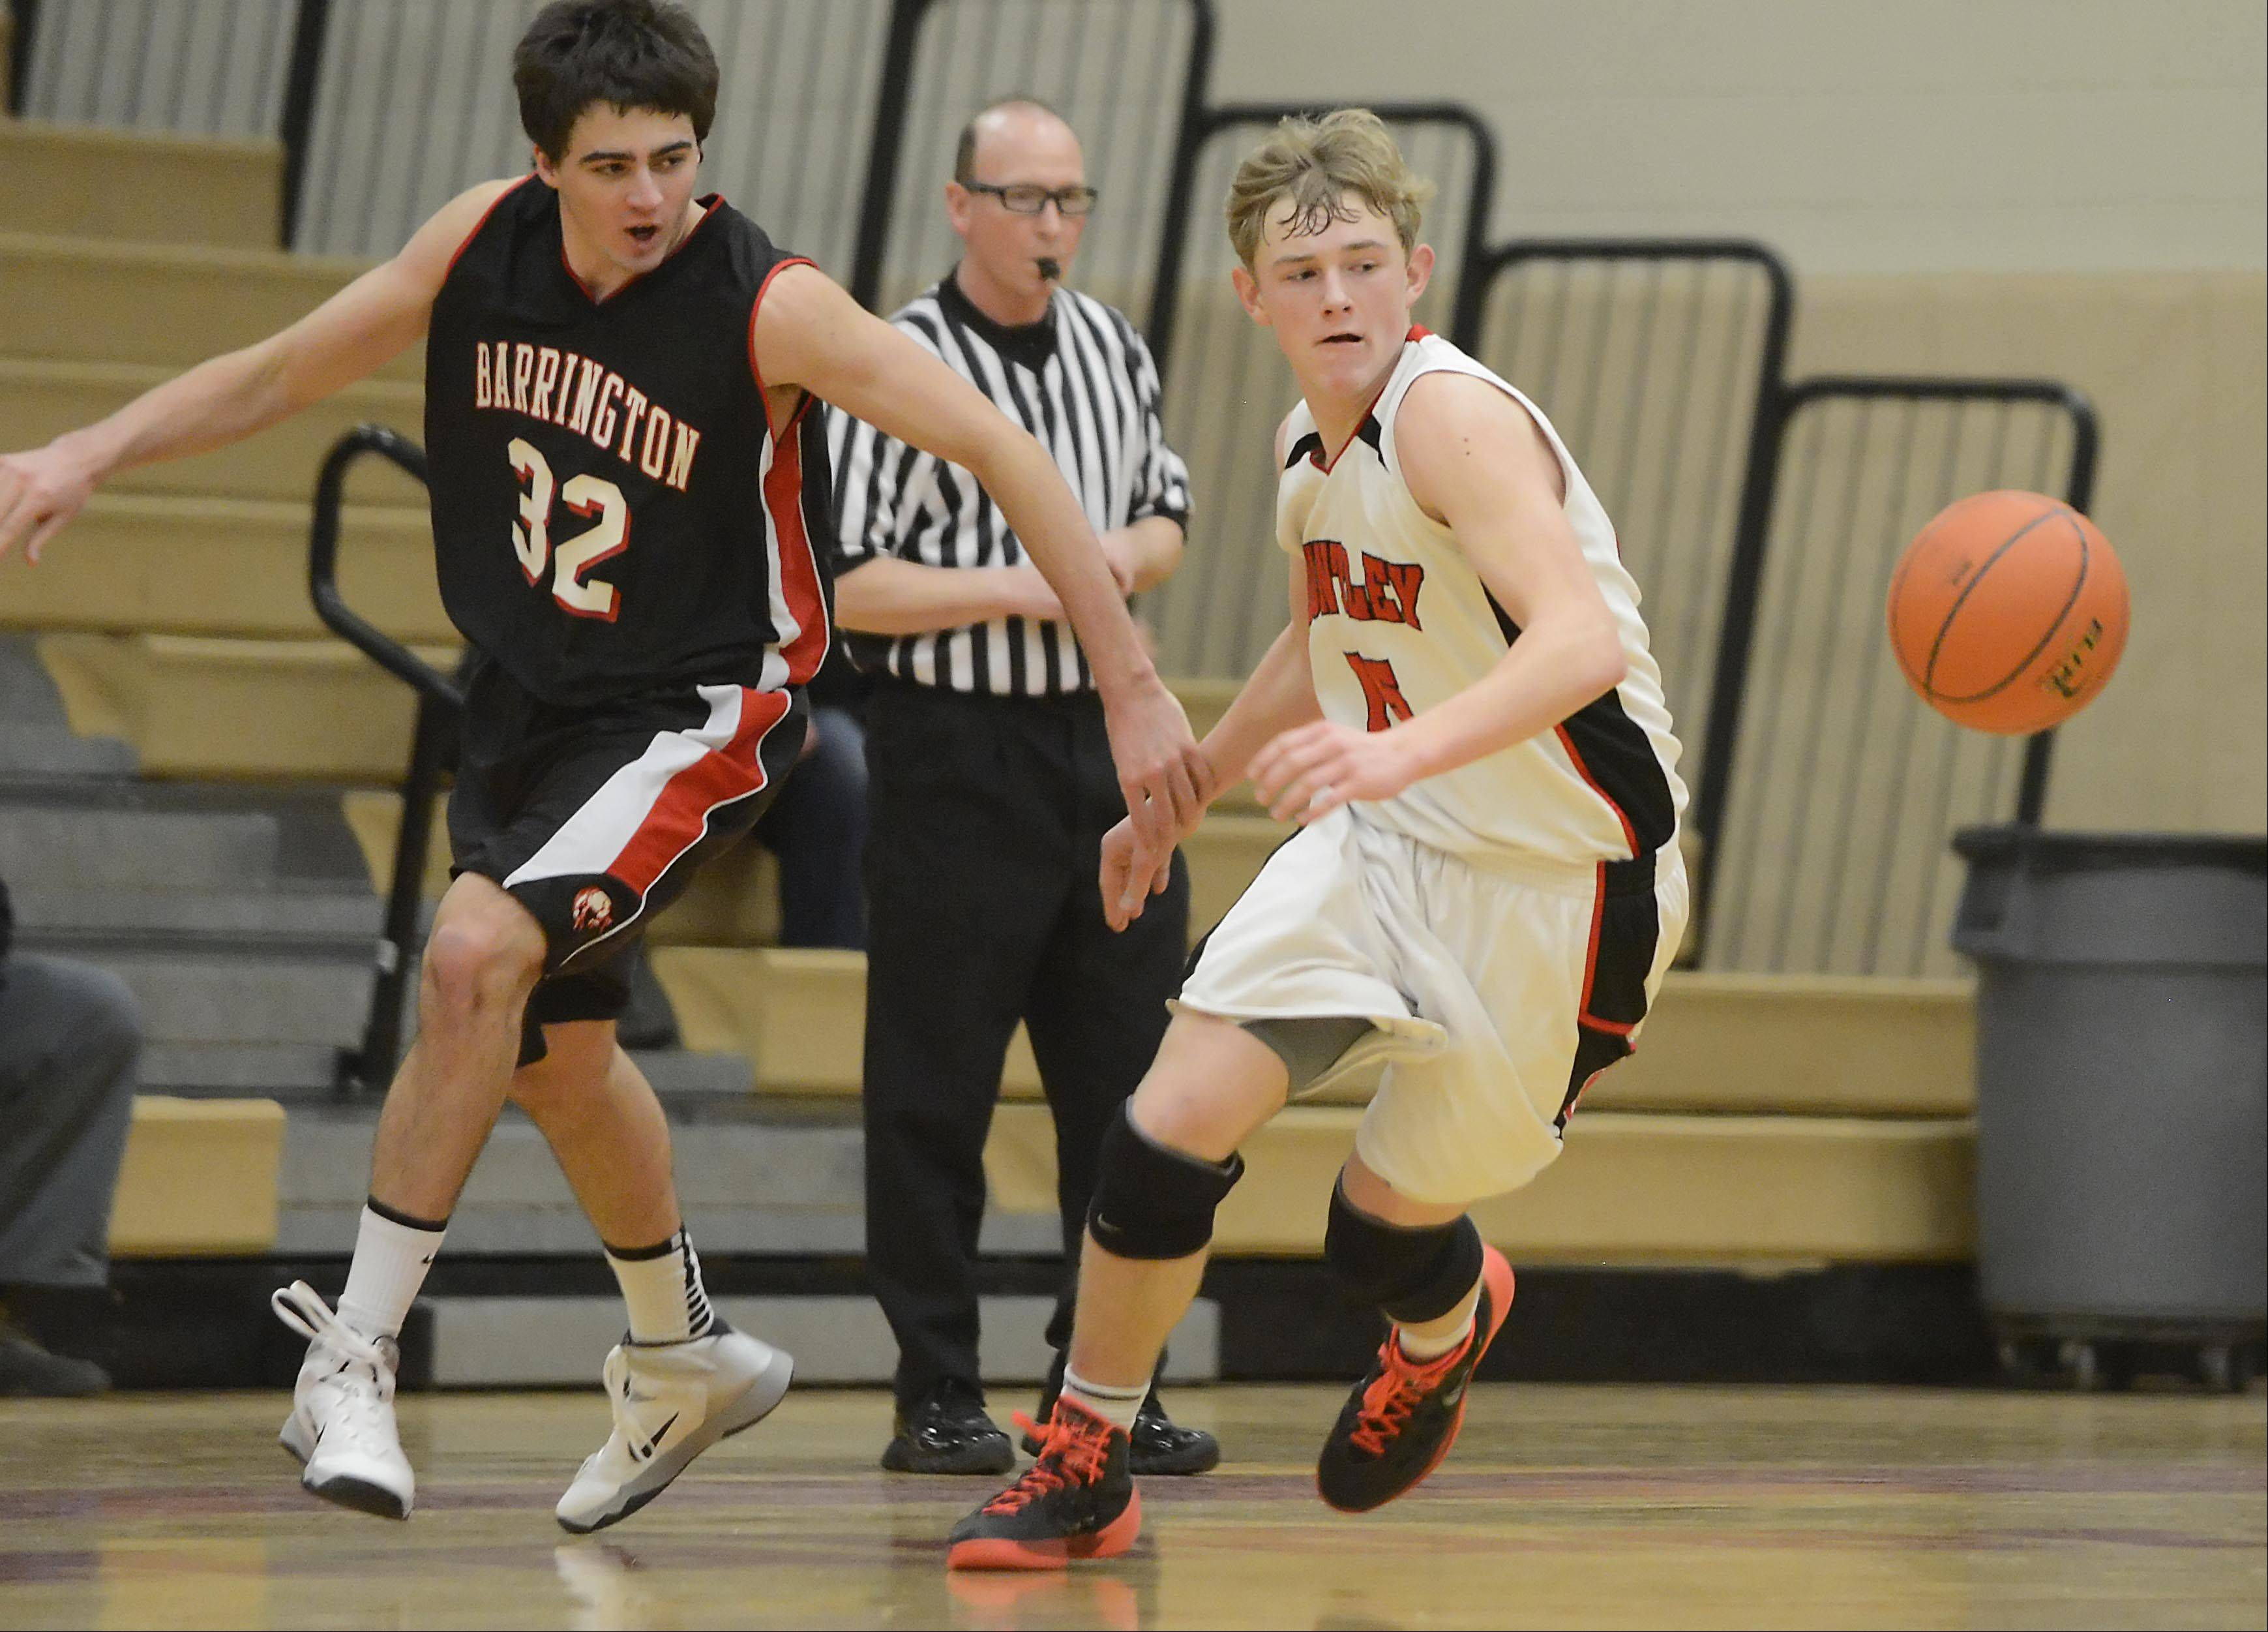 Huntley's Jack Bessey chases the ball he just stole from Barrington's Austin Madrzyk late in the game Tuesday in Huntley.